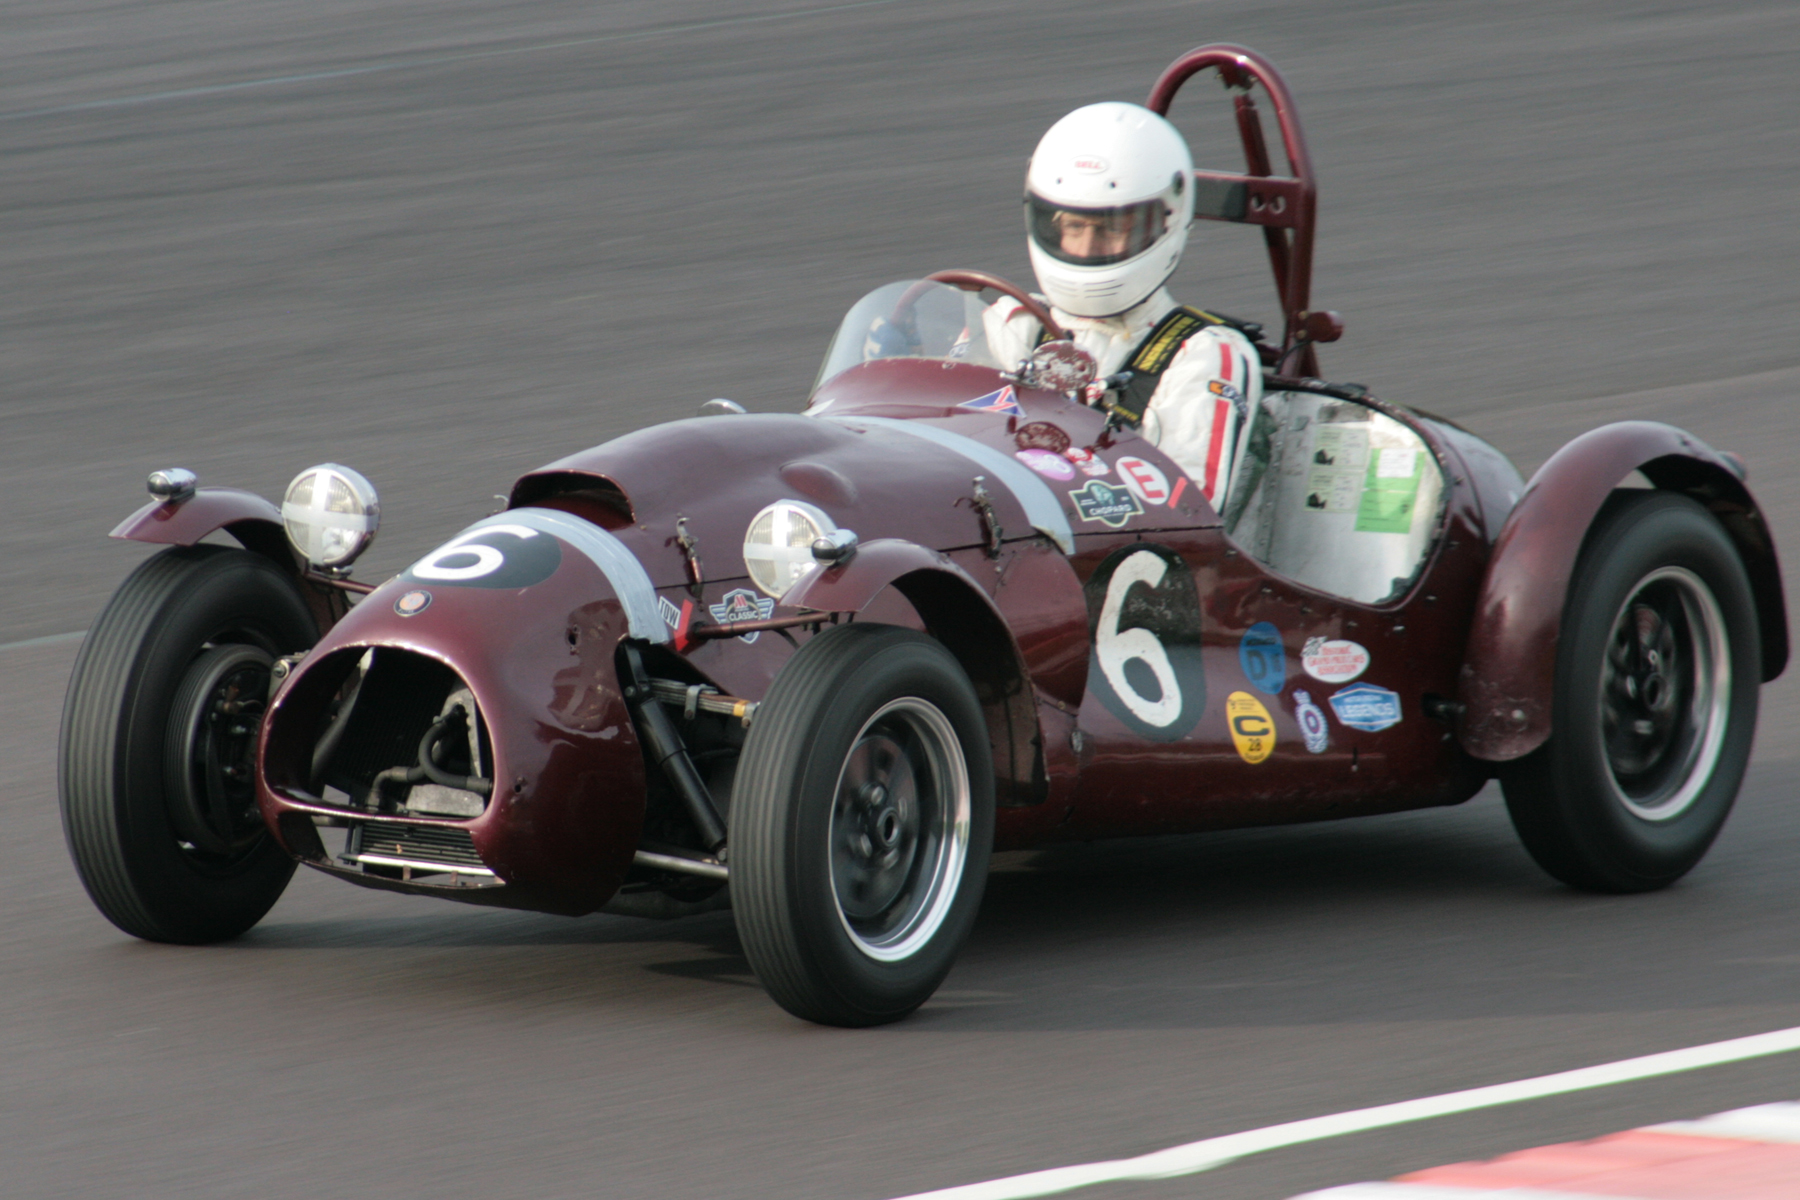 In a tribute to Tony Crook, who died earlier this year, John Ure drove this Cooper Bristol T24/25, a specially invited car, and one Crook himself had owned and driven, to 3rd overall and posted fastest race lap. Photo - John Turner